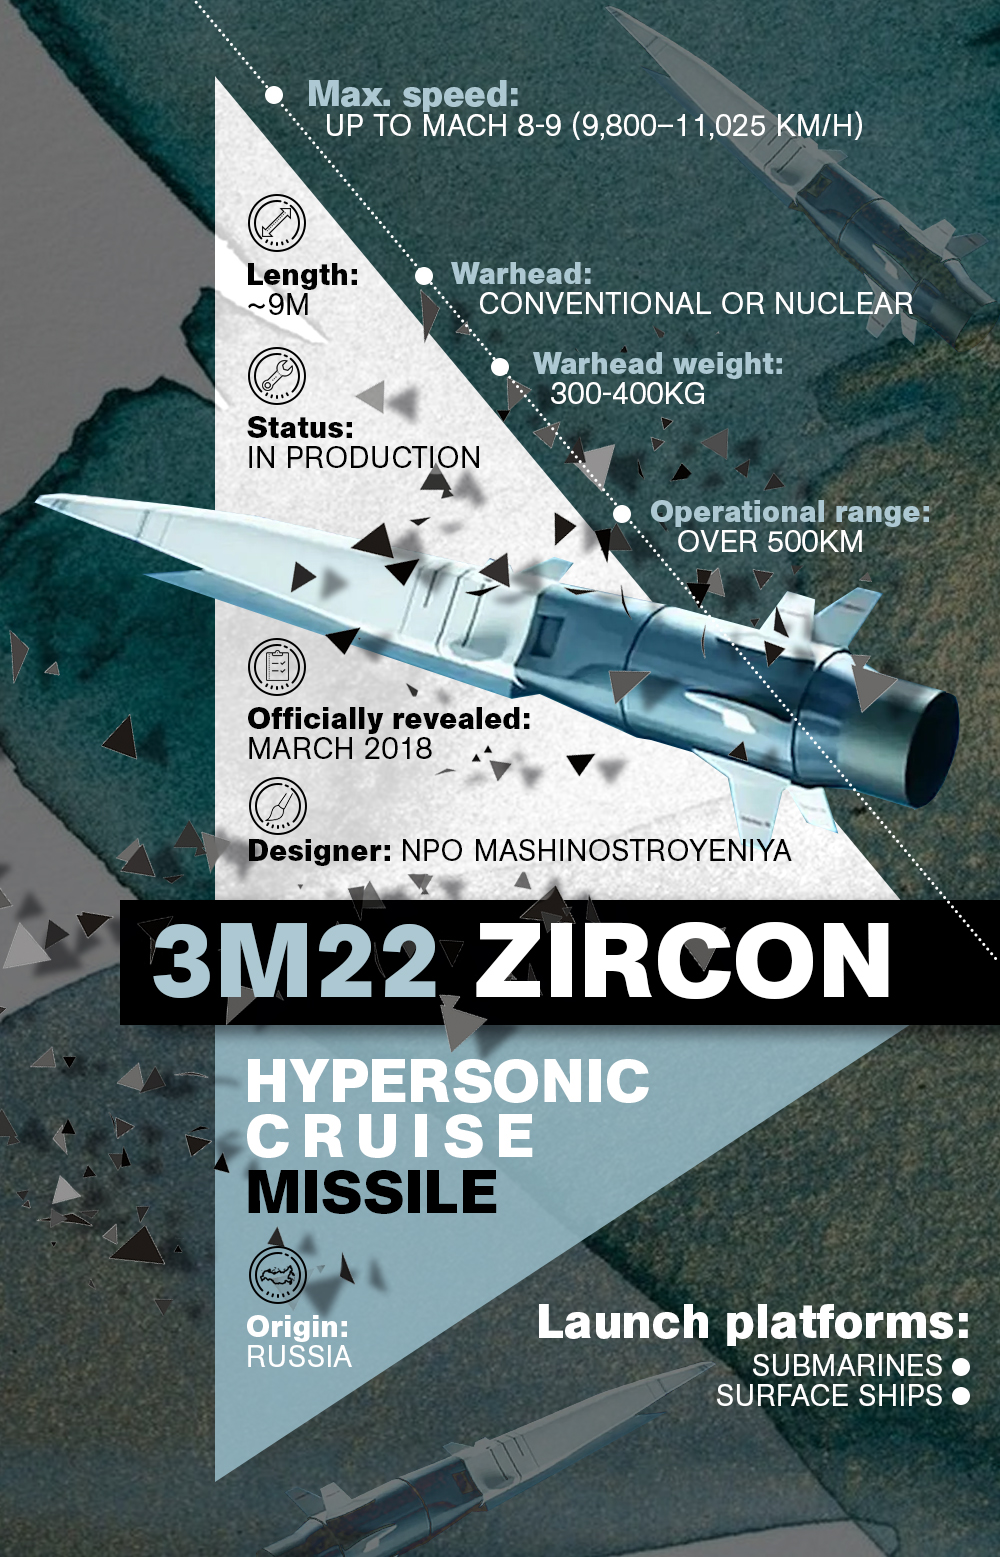 Russian Navy Test-Launches Zircon Hypersonic Missile For 2nd Time In Less Than Month (Videos)